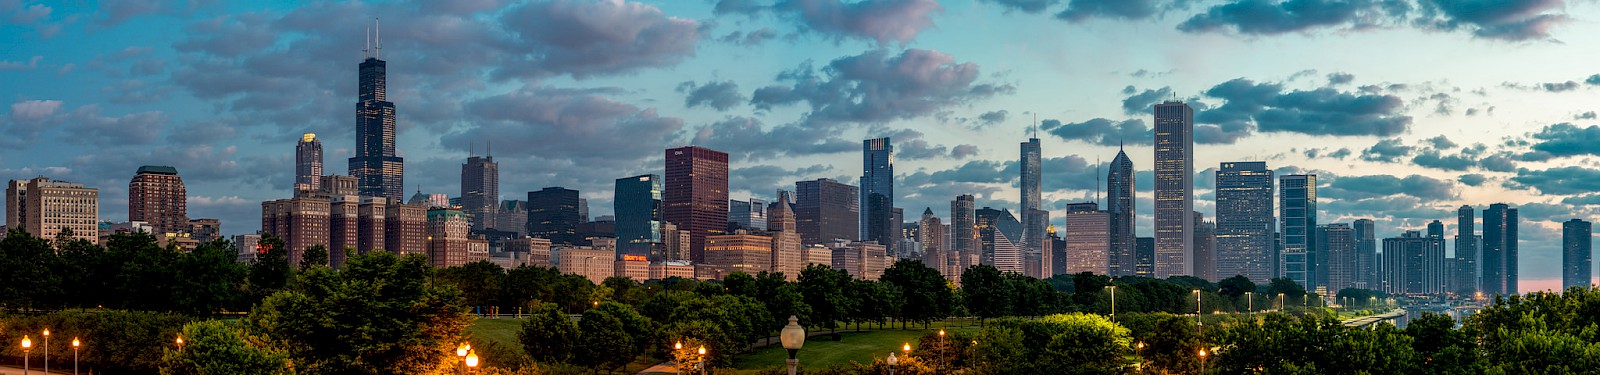 Chicago at dawn, by William Prost at [Flickr](https://flic.kr/p/ooSa2f)